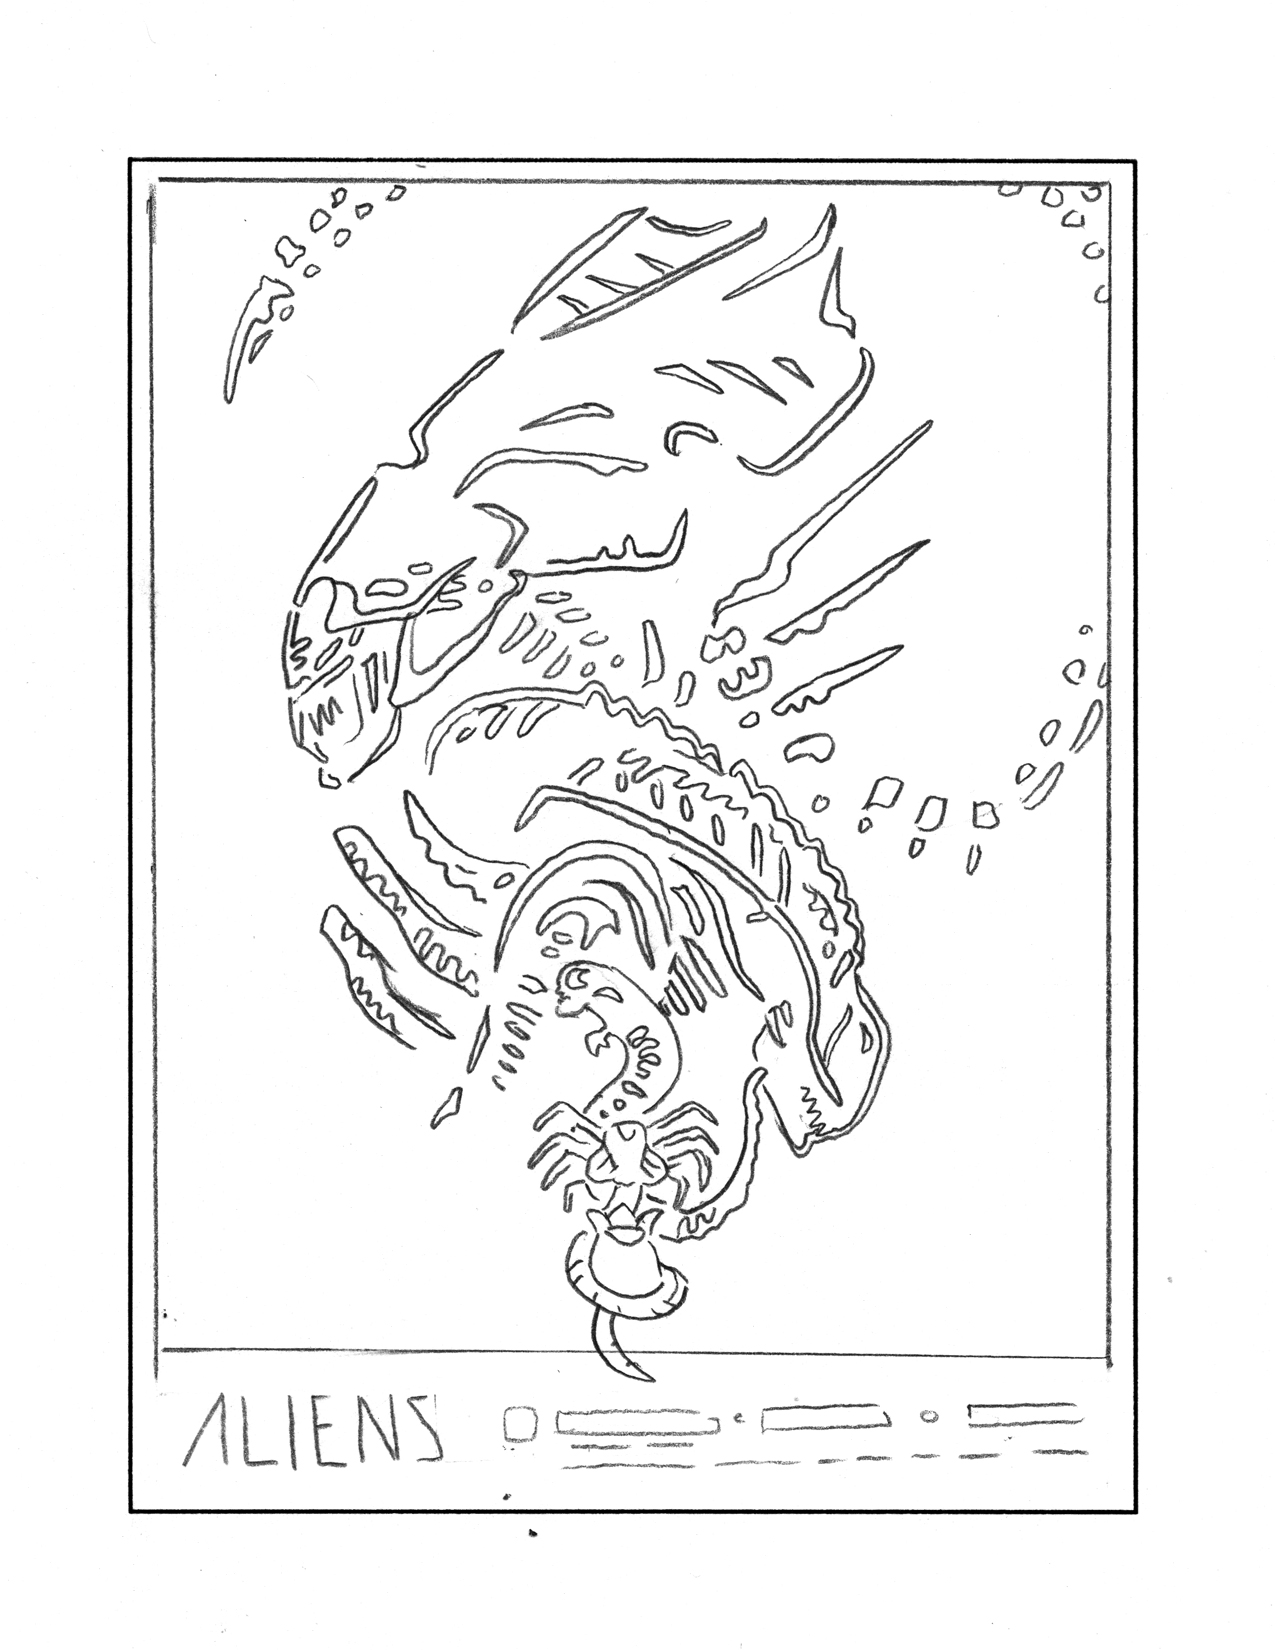 ALIENS_Roughs-02a.jpg